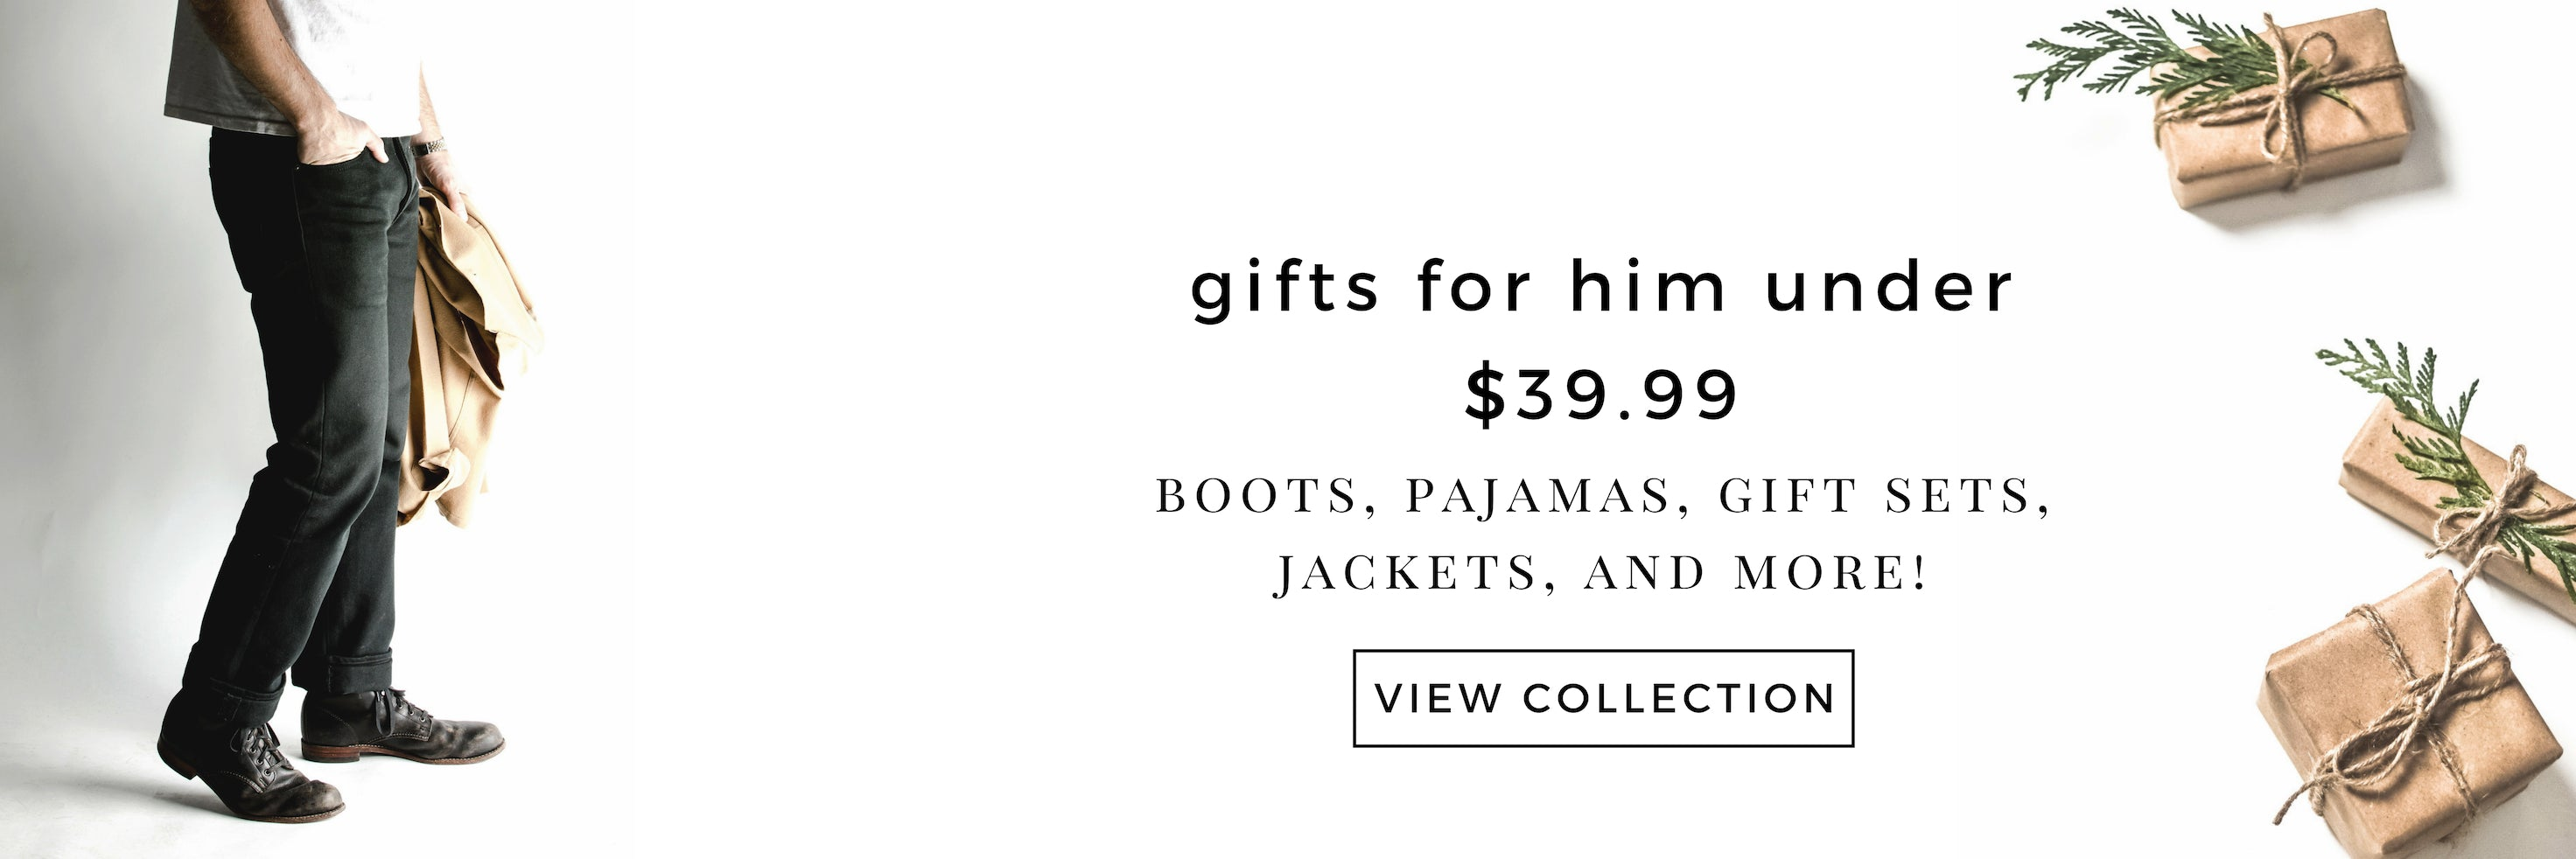 Gifts for Him Under $39.99